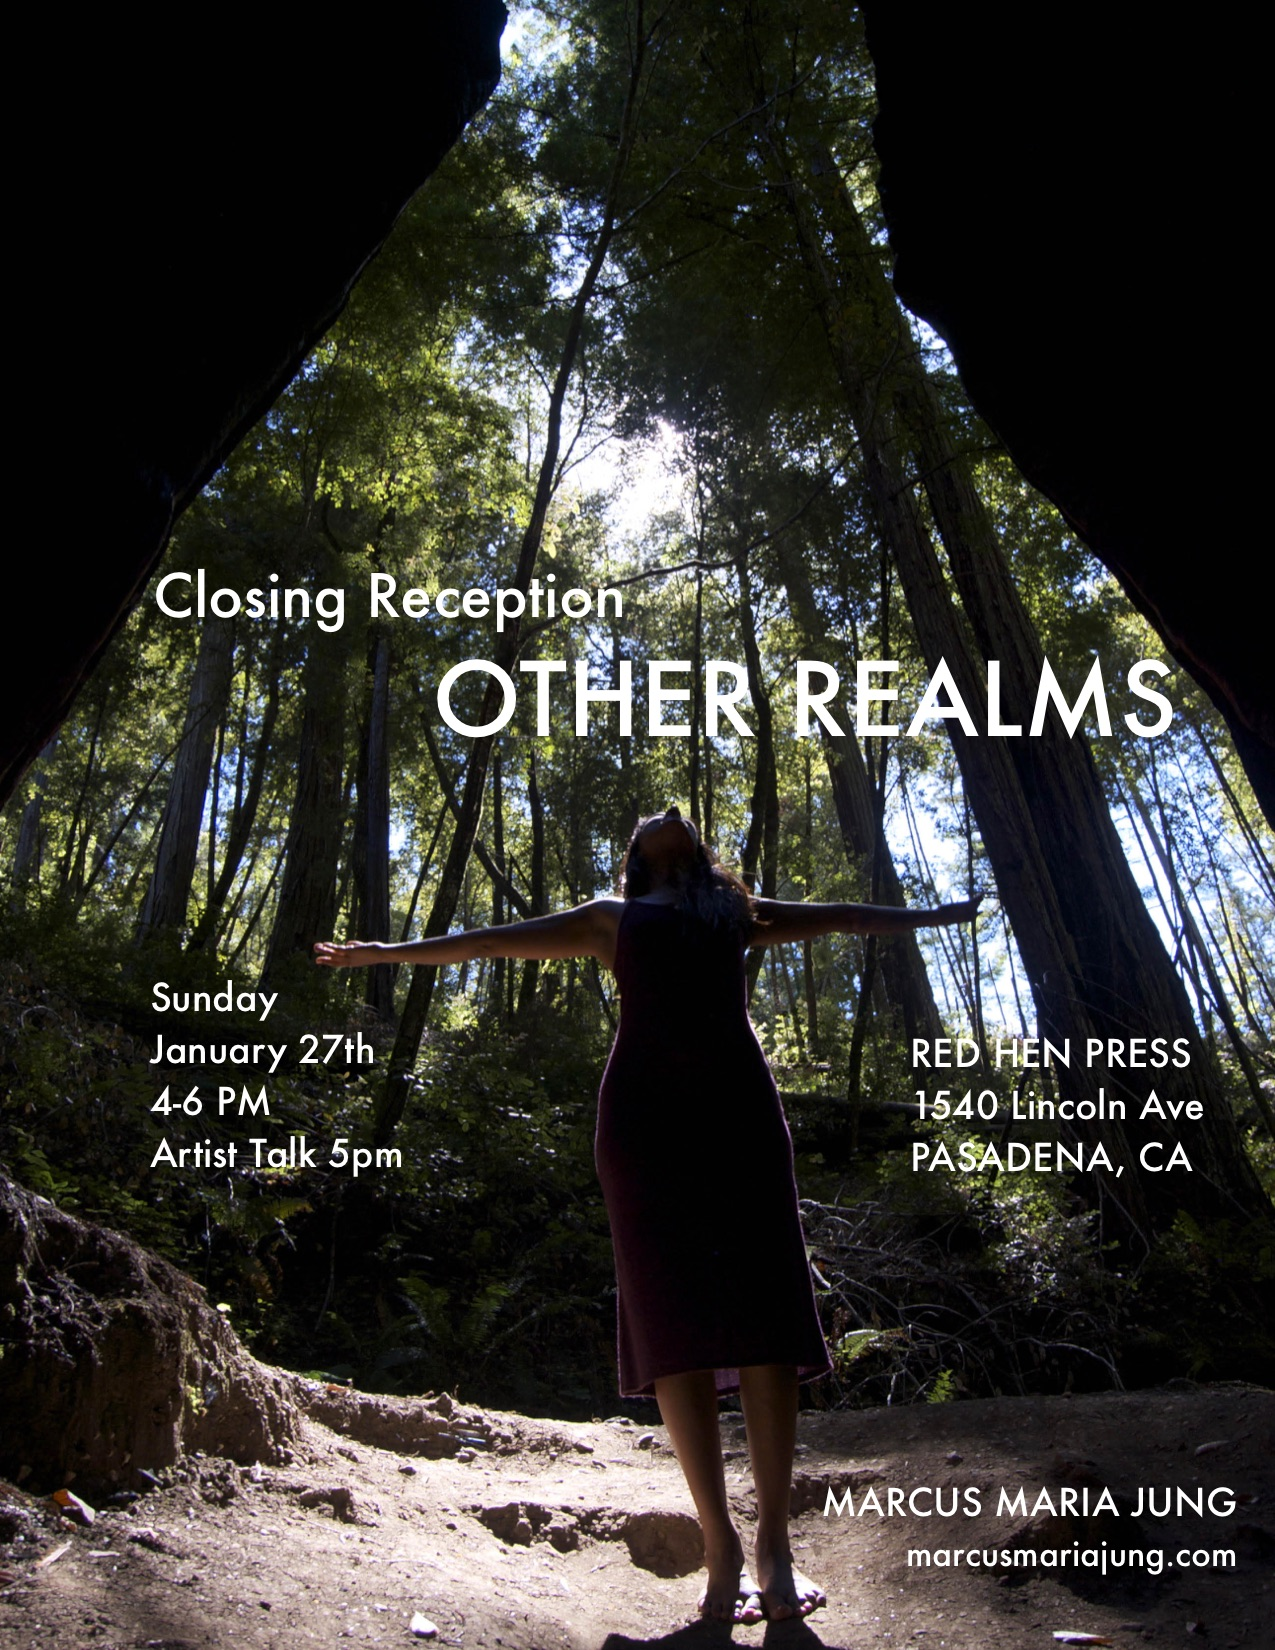 CLOSING RECEPTION  OTHER REALMS  RED HEN PRESS, PASADENA, CA SUNDAY, JANUARY 27th, 2019, 4-6 PM, ARTIST TALK 5 PM